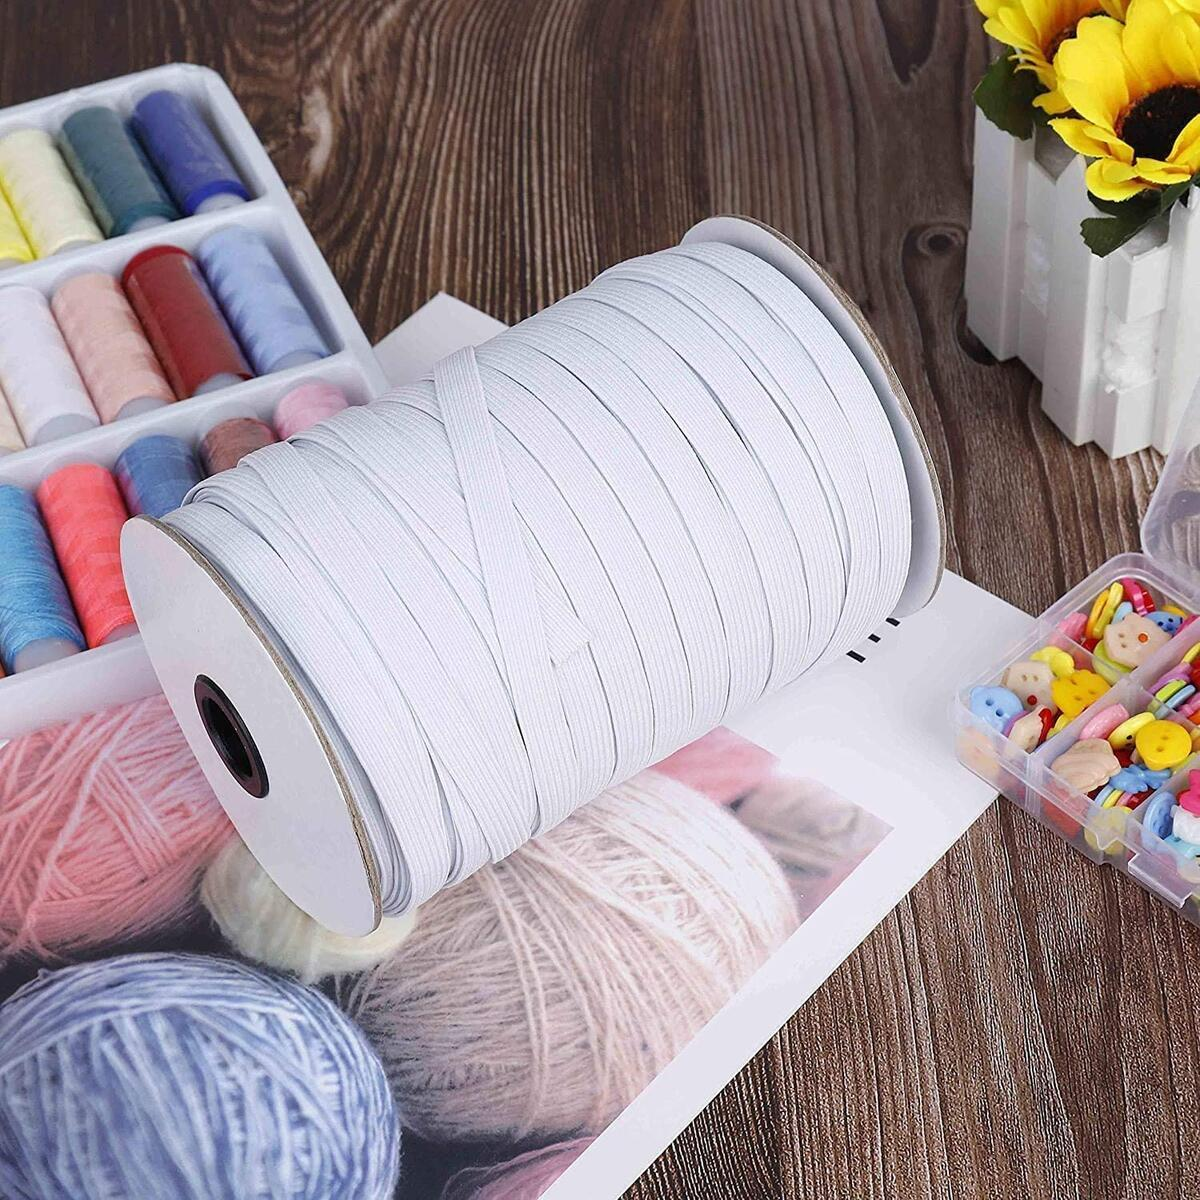 144 Yards Elastic Bands for Sewing 1/4 Inch -  Perfect for Crafts & DIY Projects